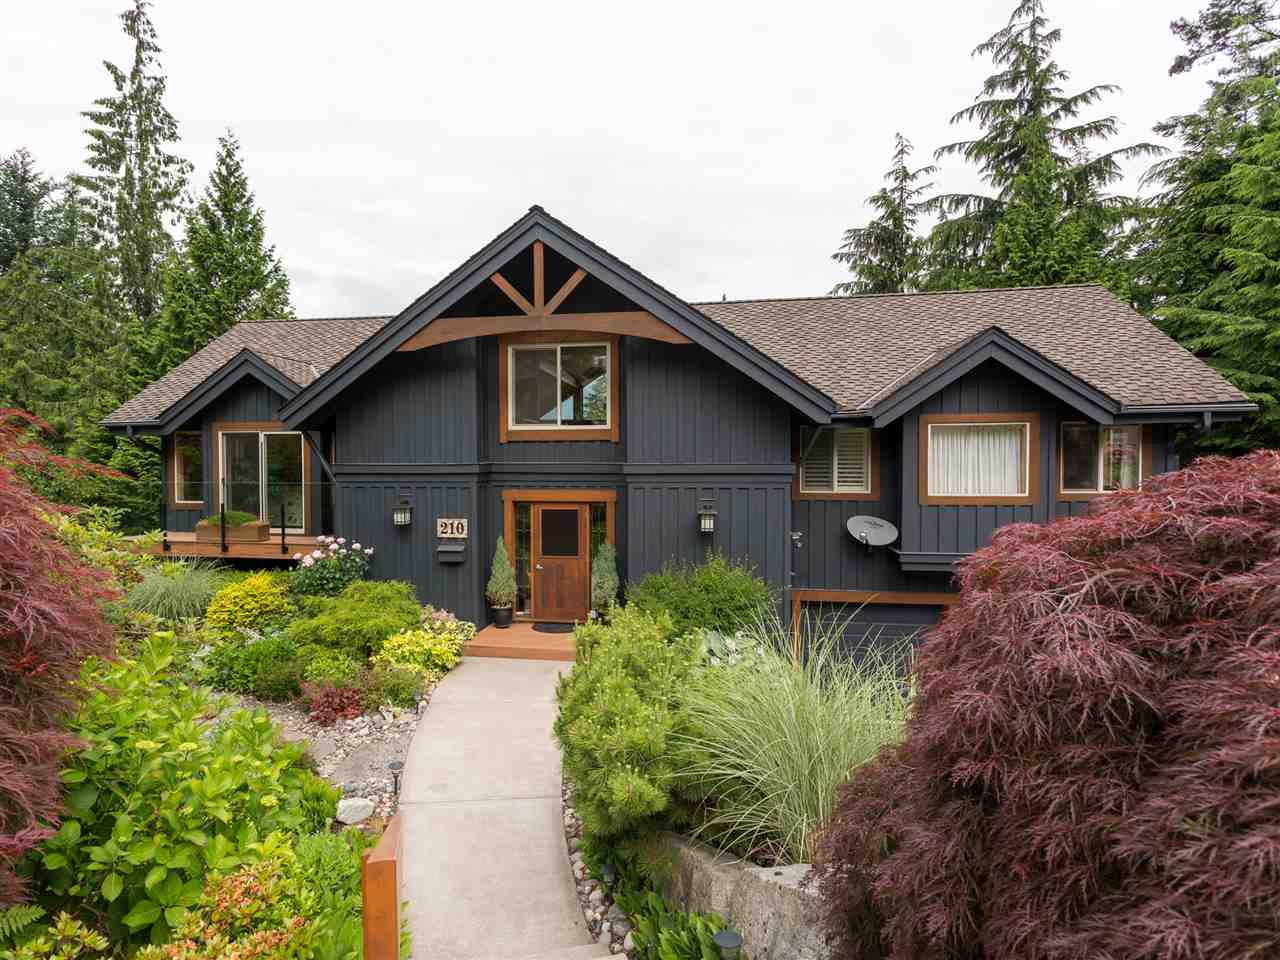 """Main Photo: 210 FURRY CREEK Drive: Furry Creek House for sale in """"FURRY CREEK"""" (West Vancouver)  : MLS®# R2286105"""